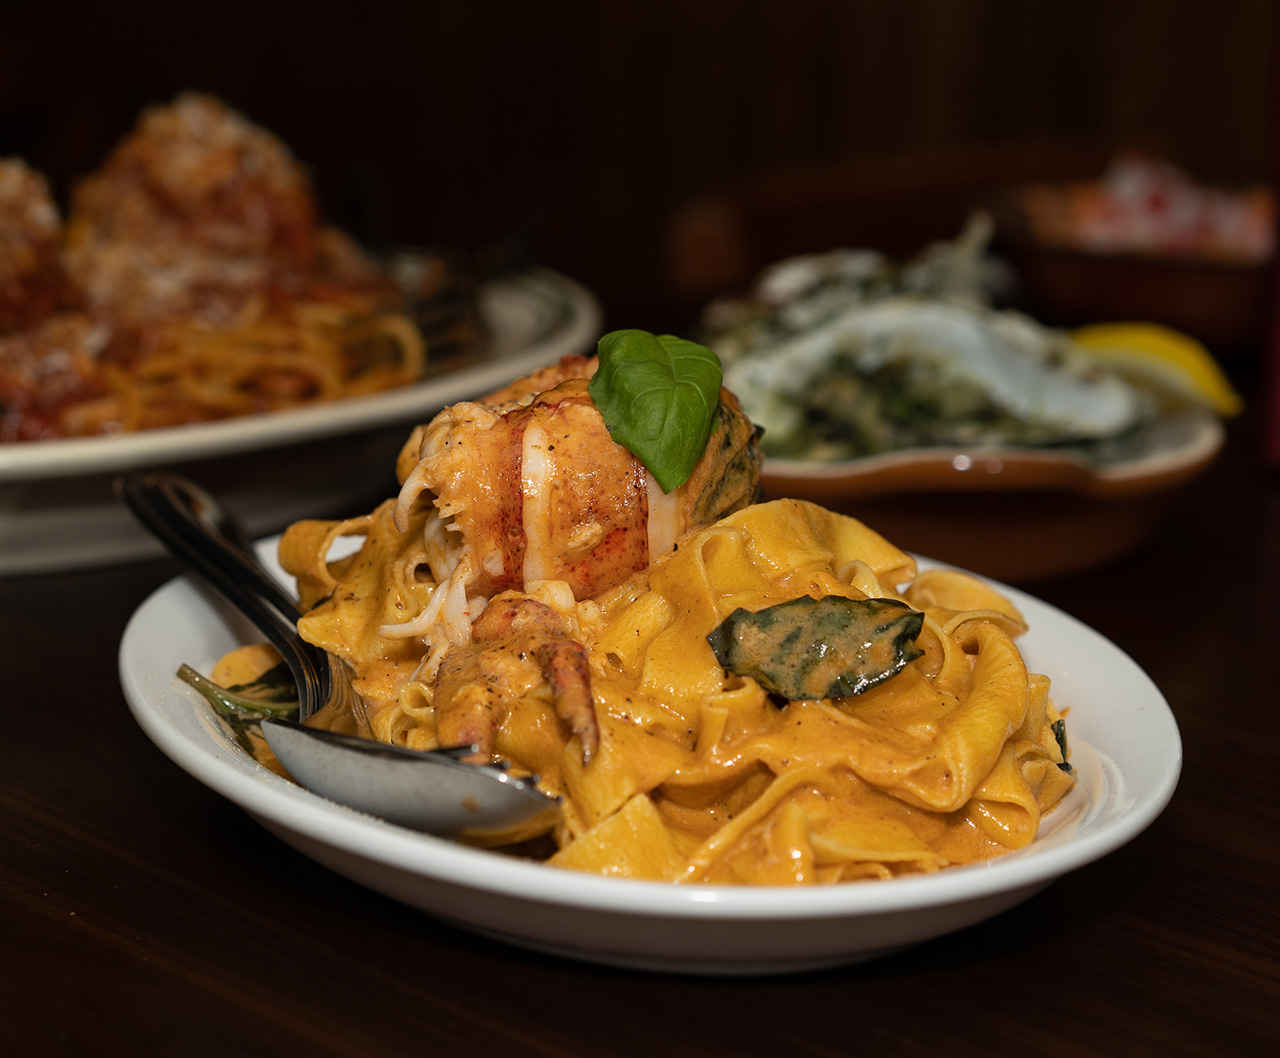 Specials that are not to be ignored - like this Lobster Fettuccine.